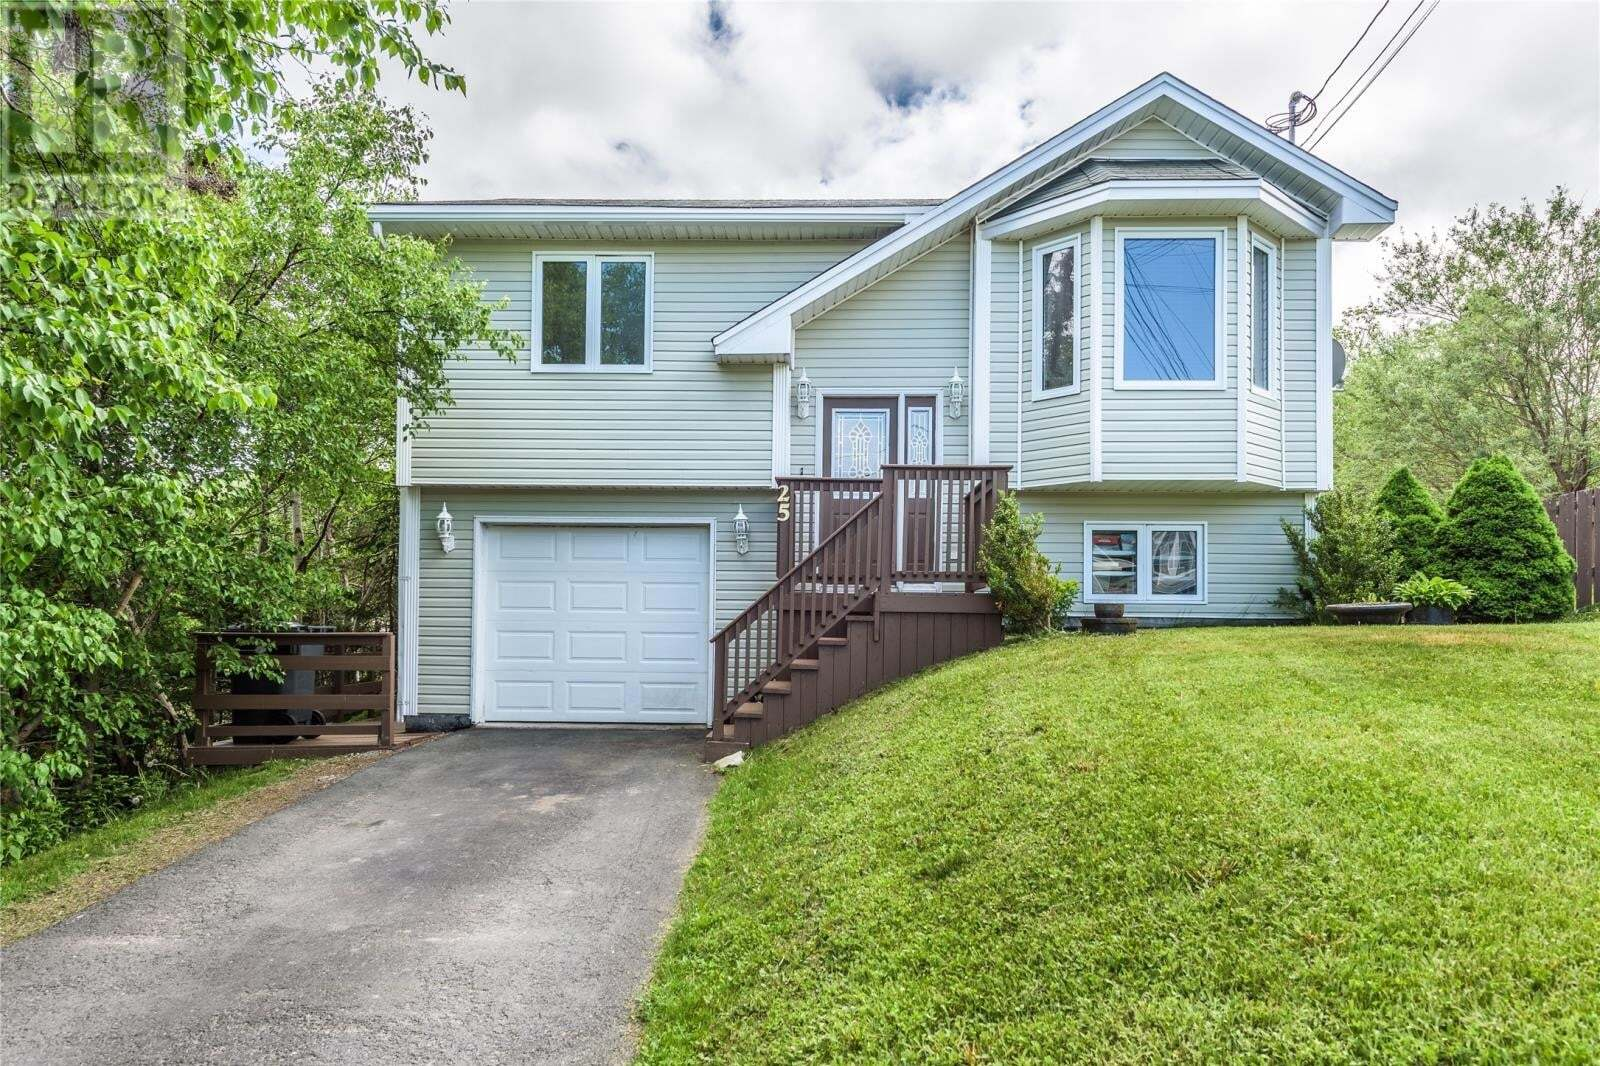 House for sale at 25 Simpson Pl Conception Bay South Newfoundland - MLS: 1216628